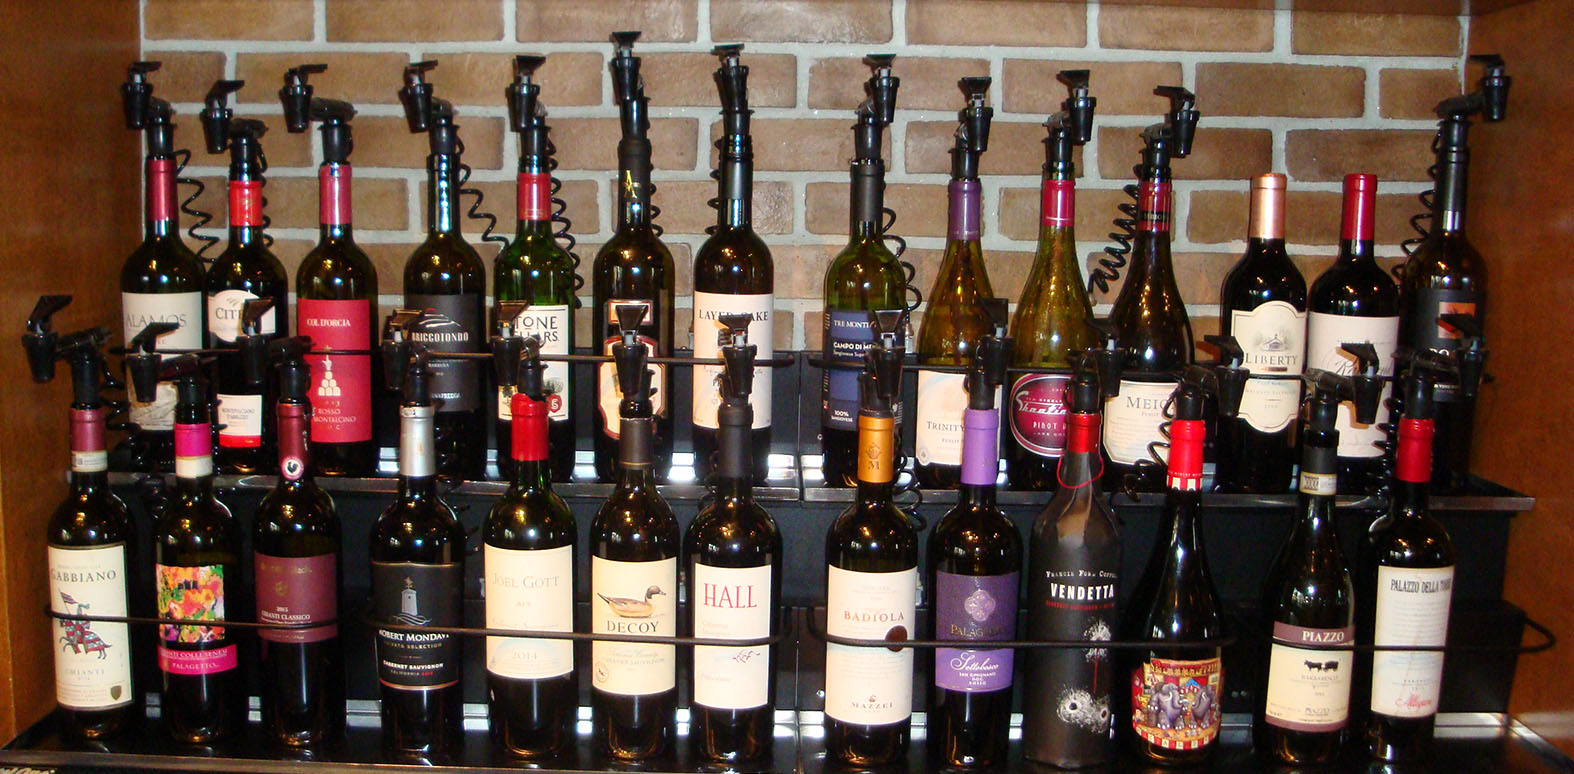 Offering 28 red wine choices by the glass, from Italy as well as California, dispensed from our state-of-the-art Nitrotap system.